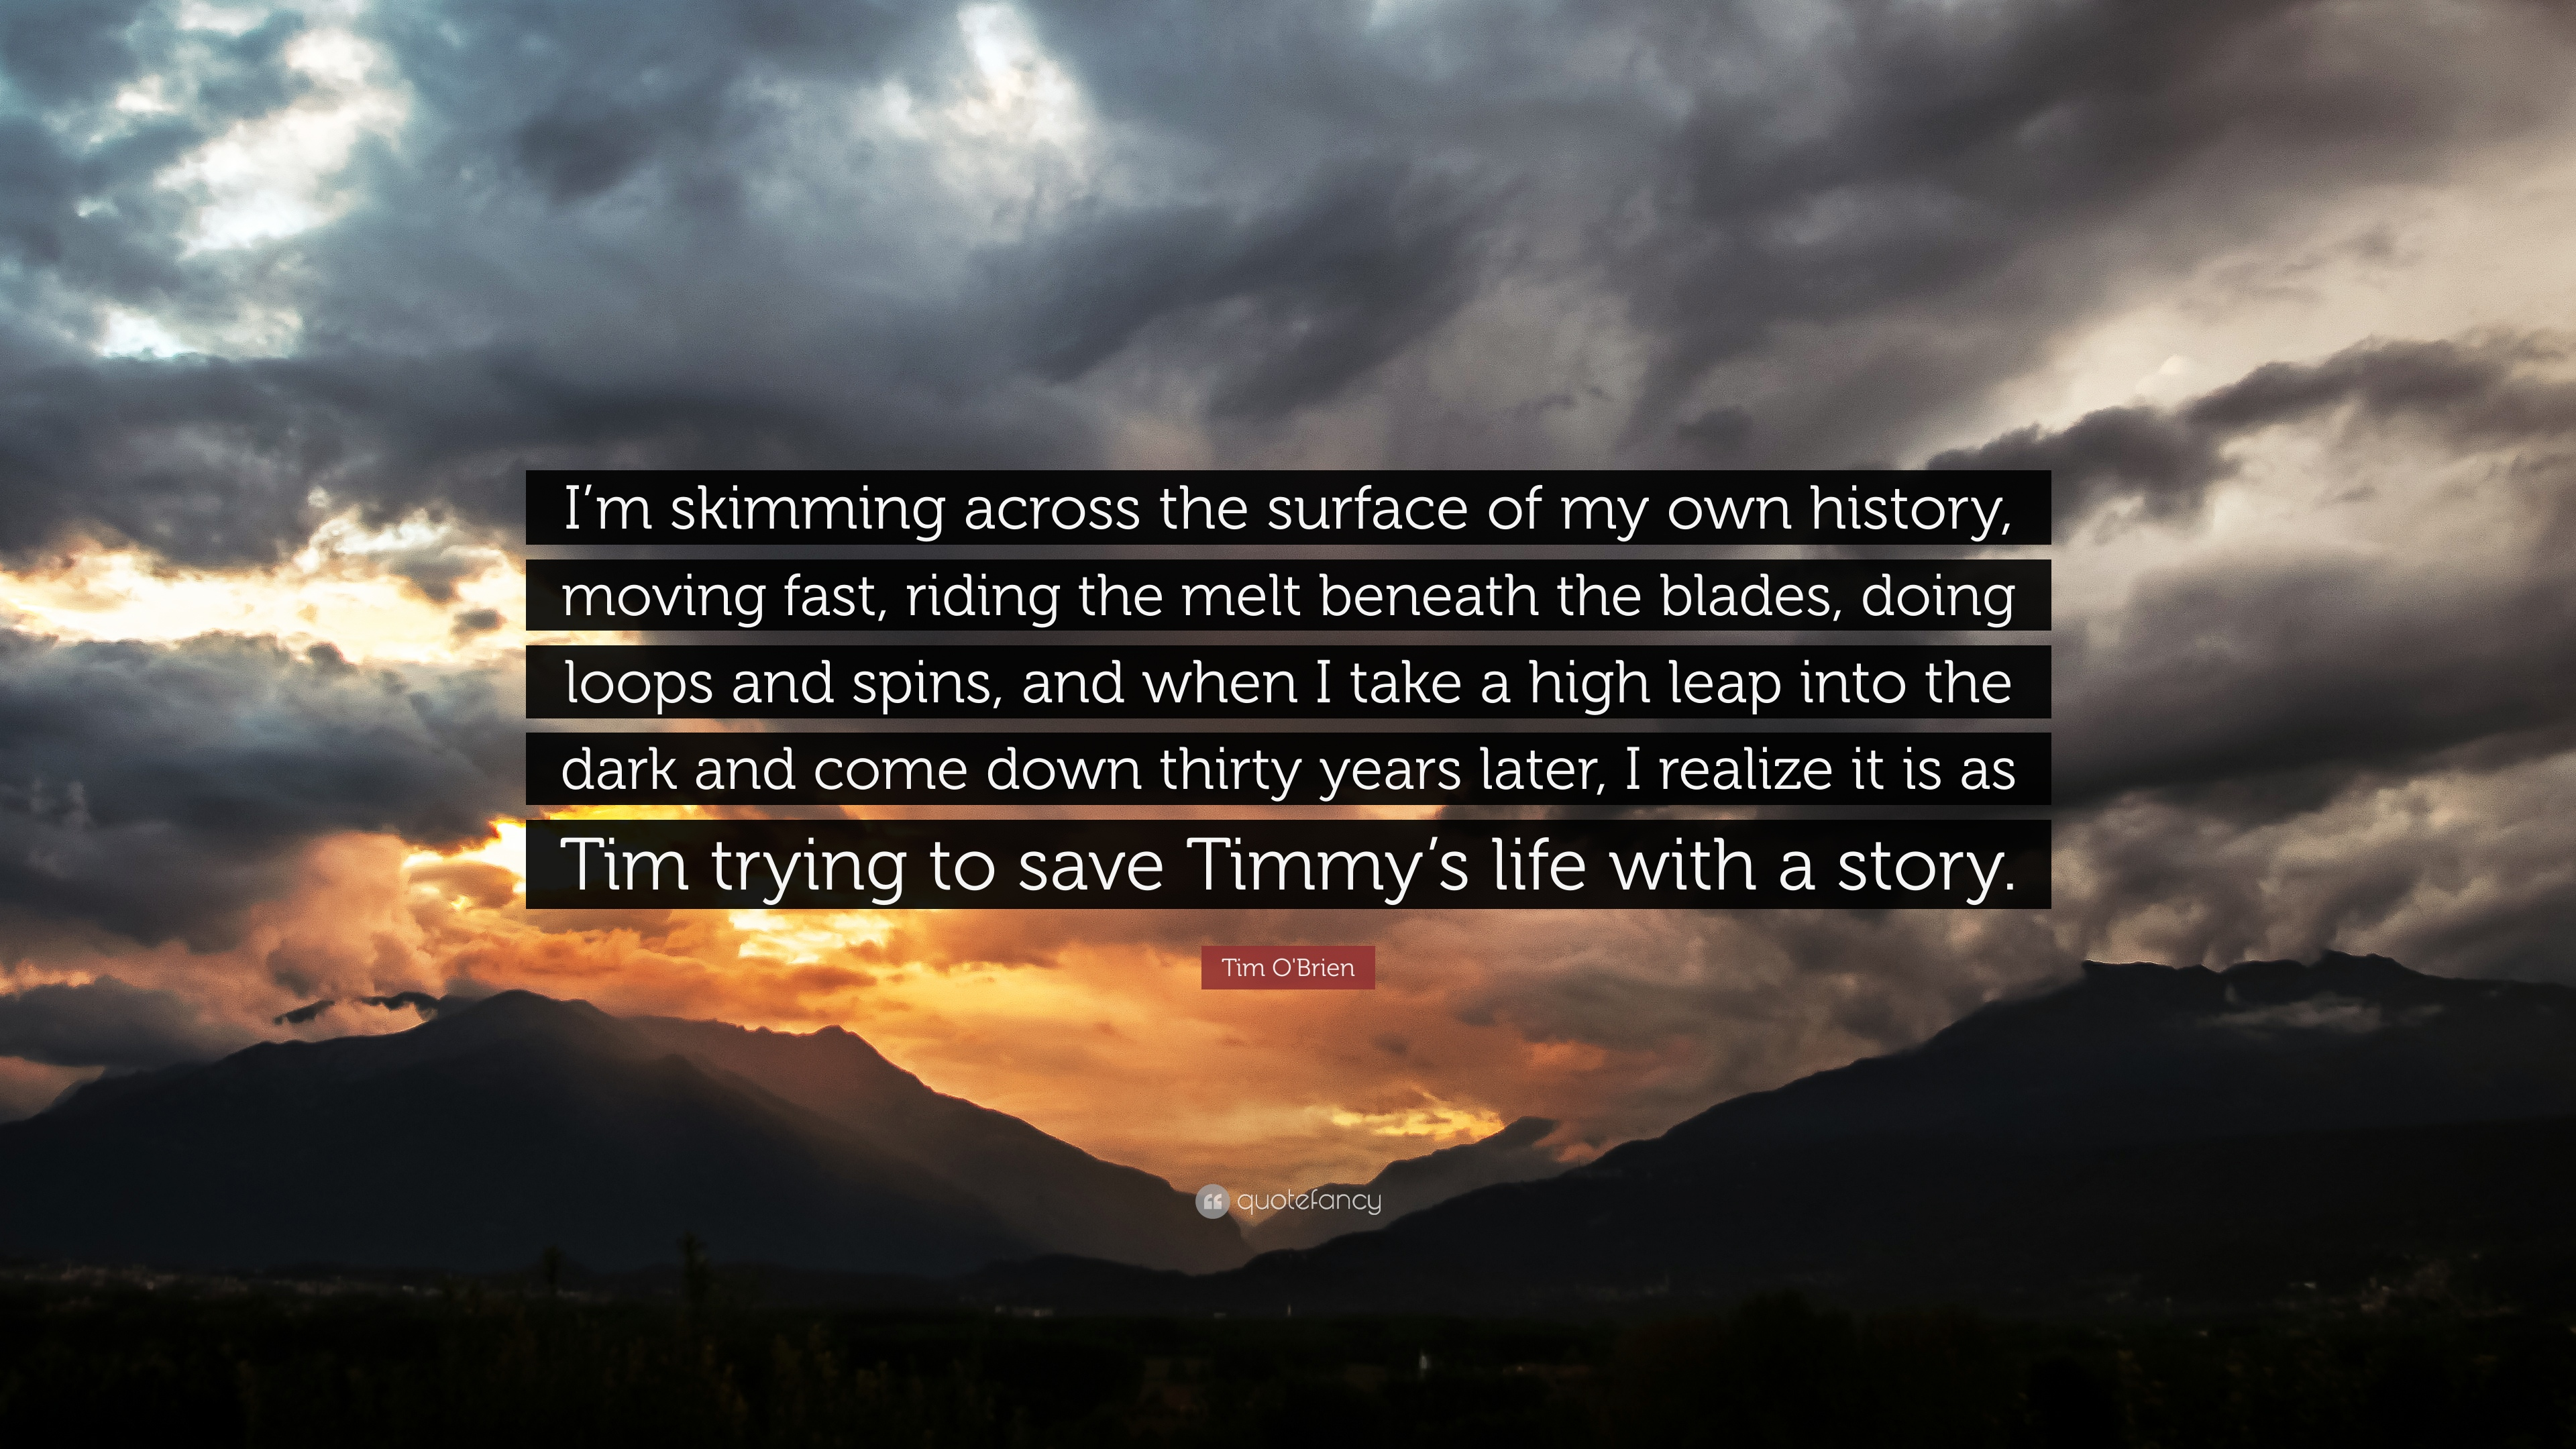 Tim O'Brien Quotes (73 wallpapers) - Quotefancy